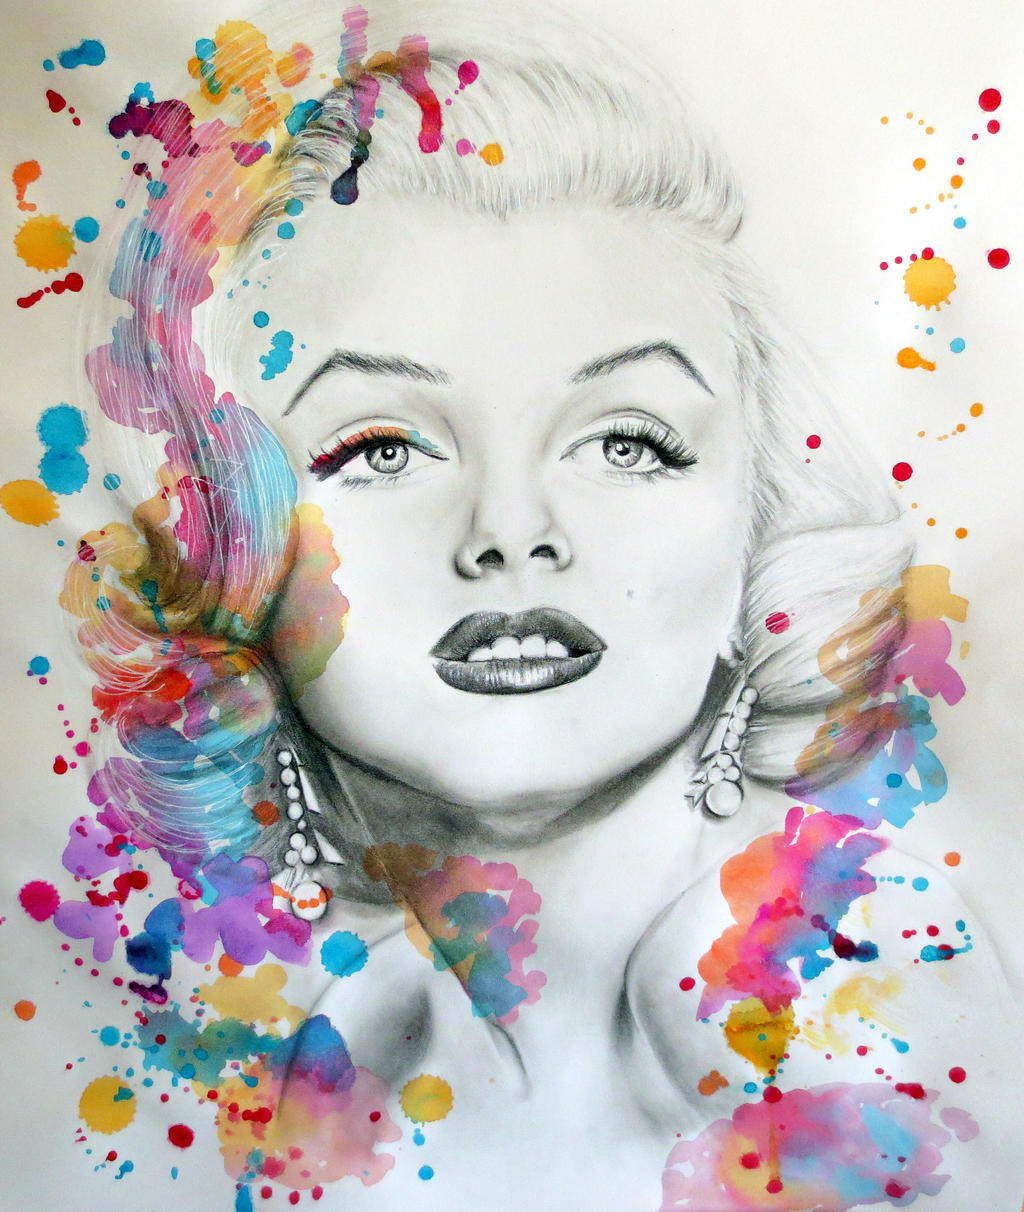 Marilyn Monroe Pencil Portrait And Paint Splash 367833512 on marilyn monroe drawings